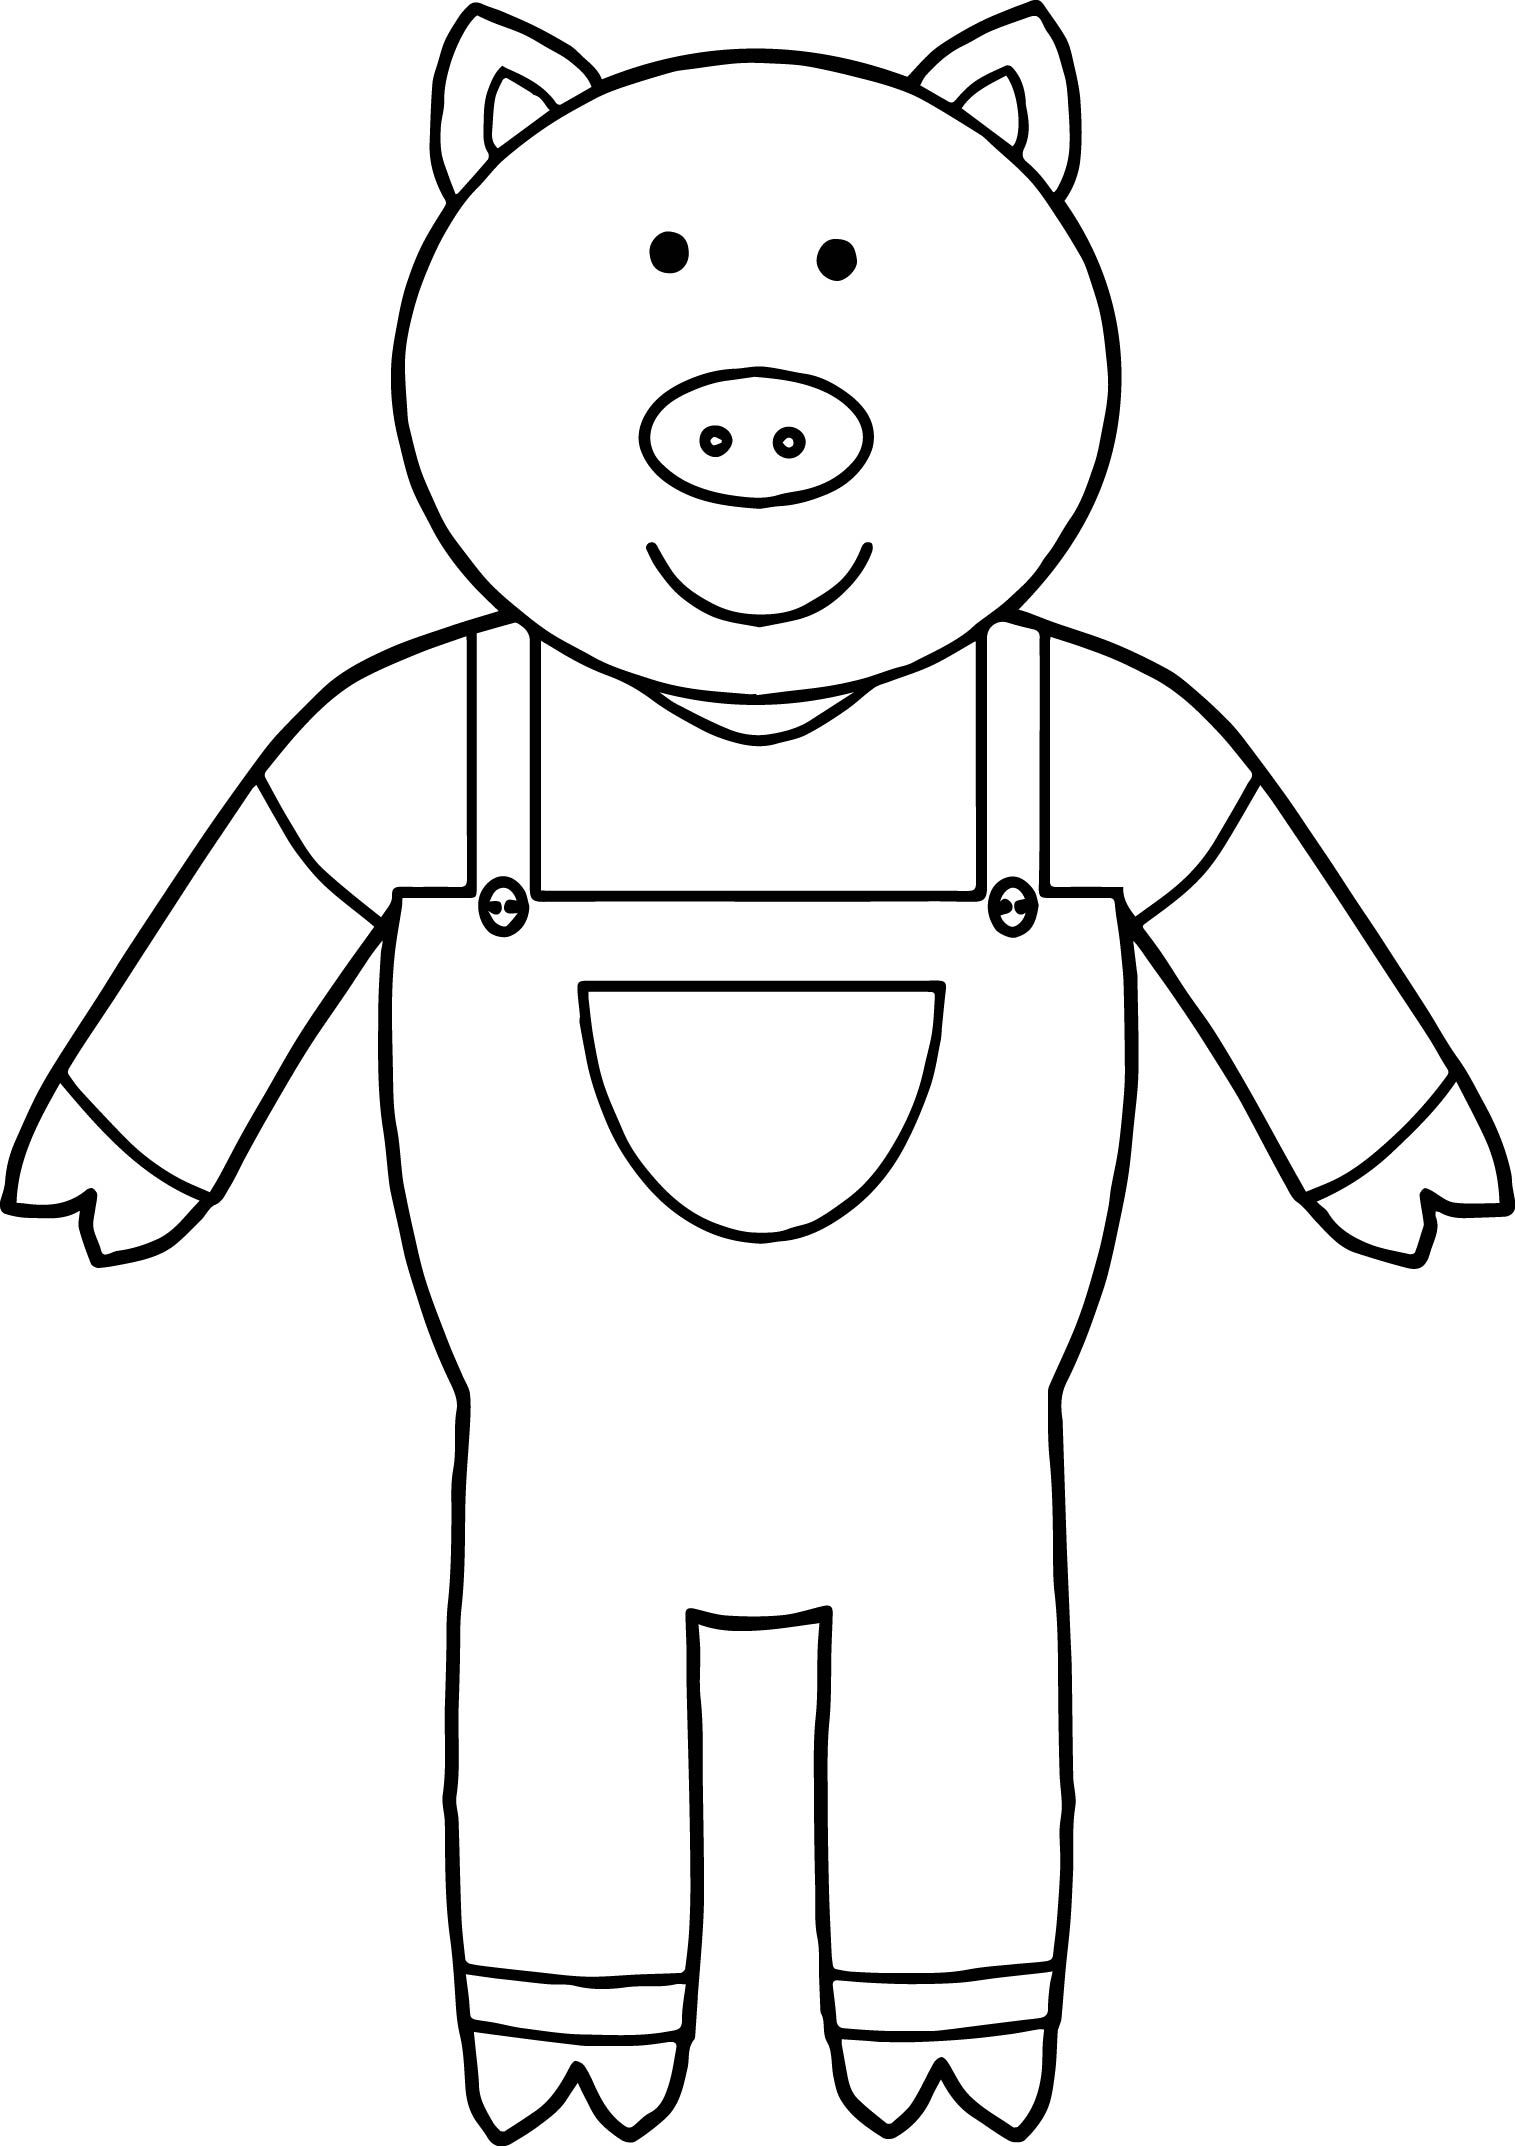 Cool One 3 Little Pigs Coloring Page Cute Baby Pigs Three Little Pigs Little Pigs